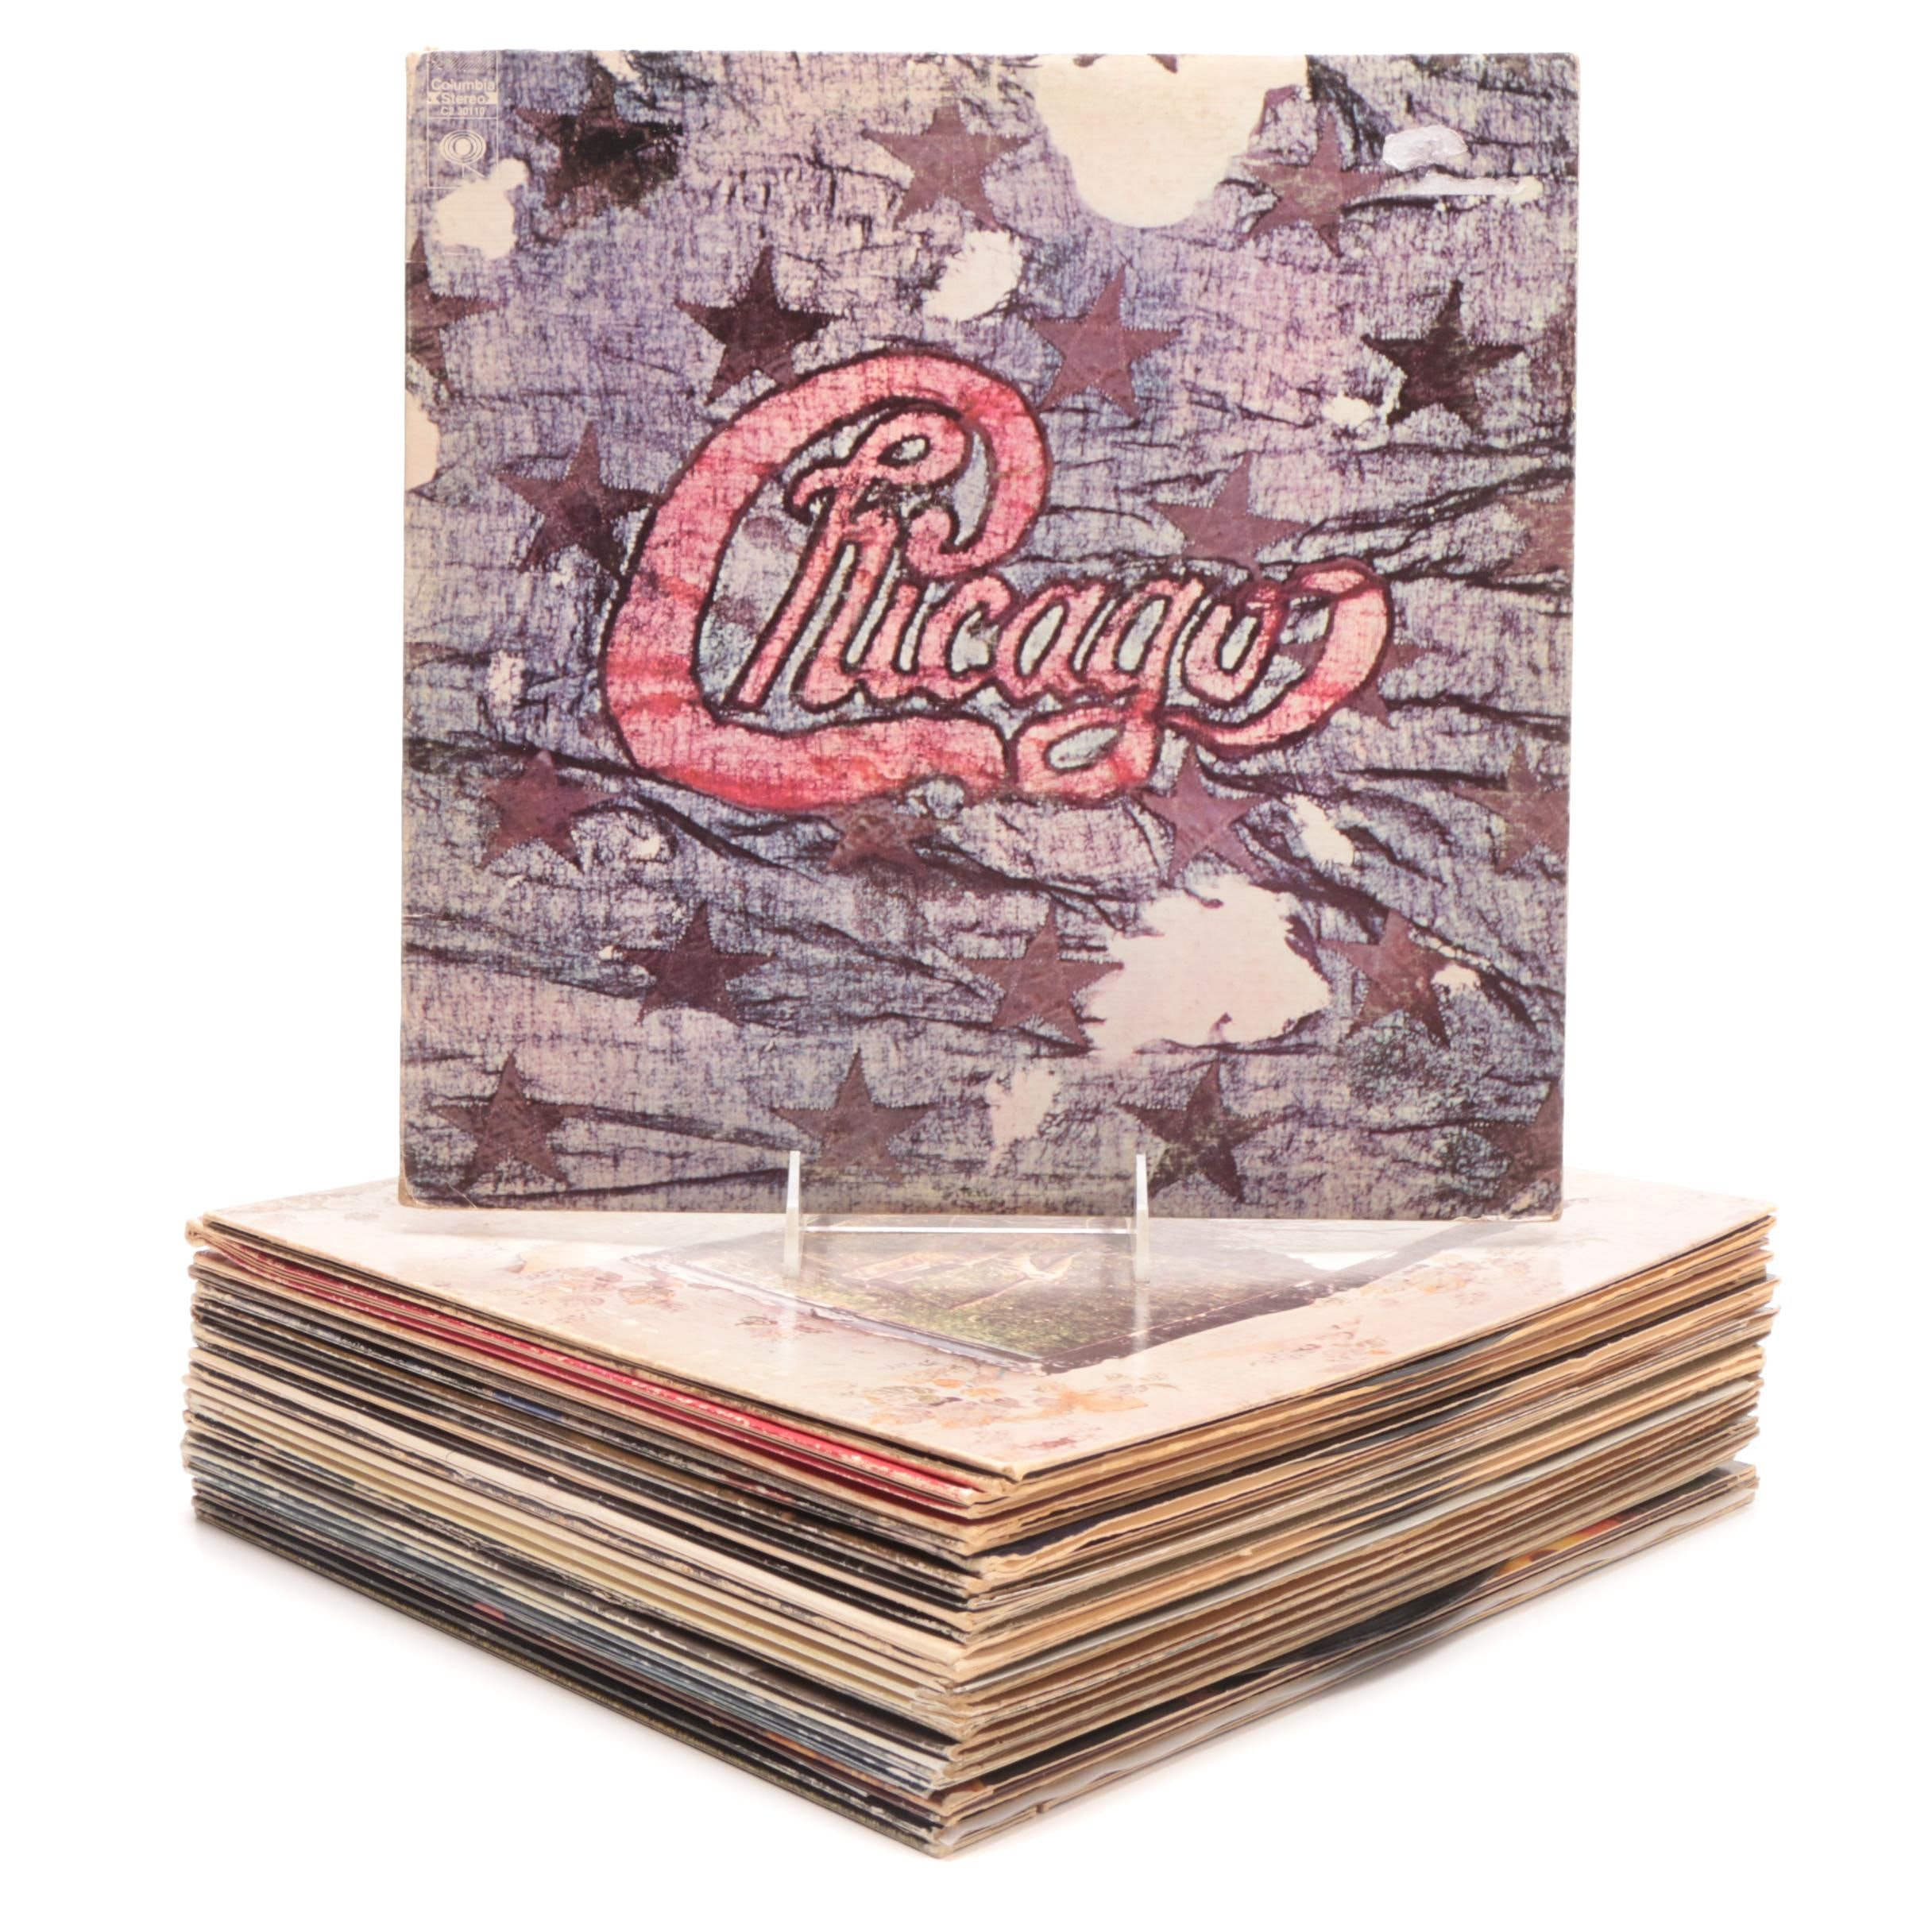 Classic Rock LP Records including Chicago, Led Zeppelin and Commodores